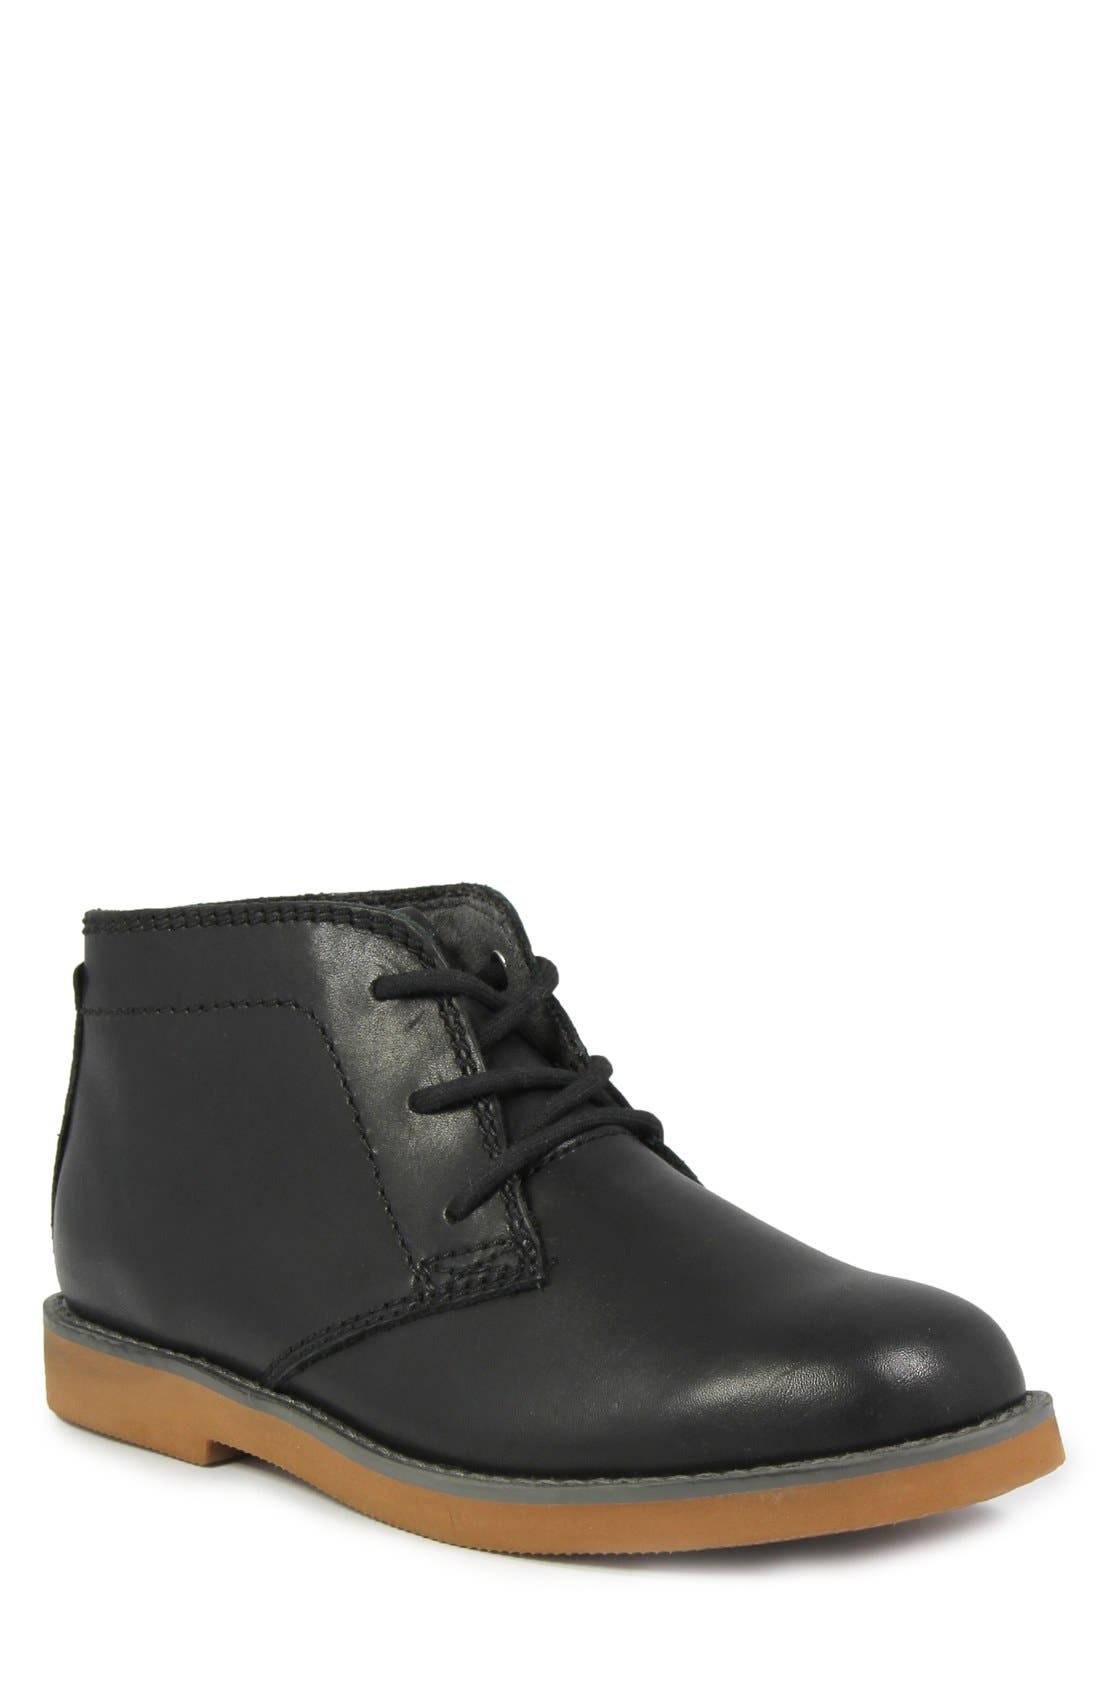 'Bucktown' Chukka Boot,                         Main,                         color,